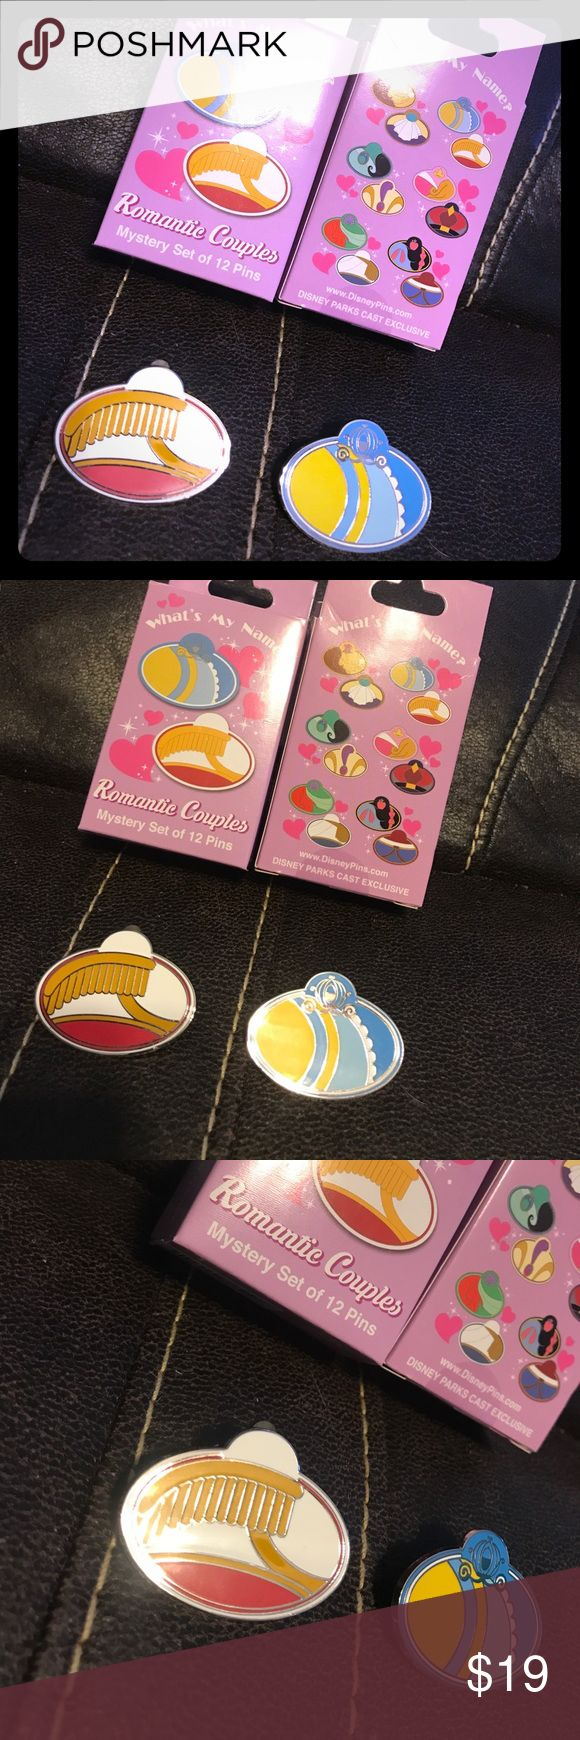 Disney cast member exclusive pins! Disney cast member exclusive pins! Cinderella and Prince Charming👑👠 set!! You will receive both pins but no box 📦. ( will not separate ) Disney Other